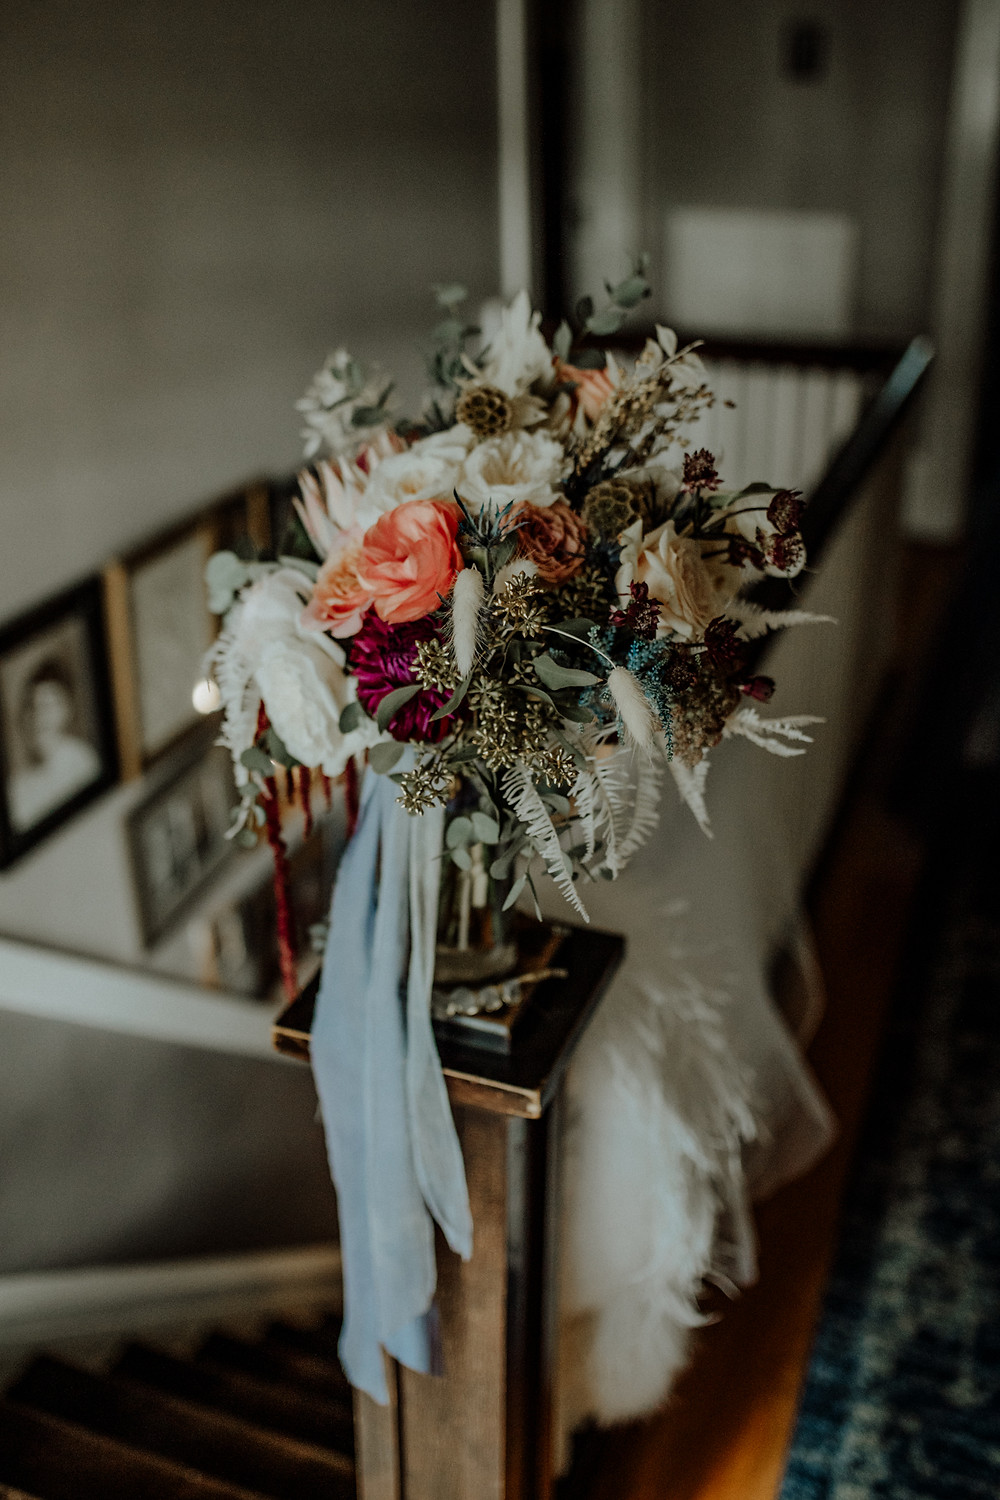 bridal bouquet by sage green events - photo by little blue bird photography. taken in jackson, michigan.